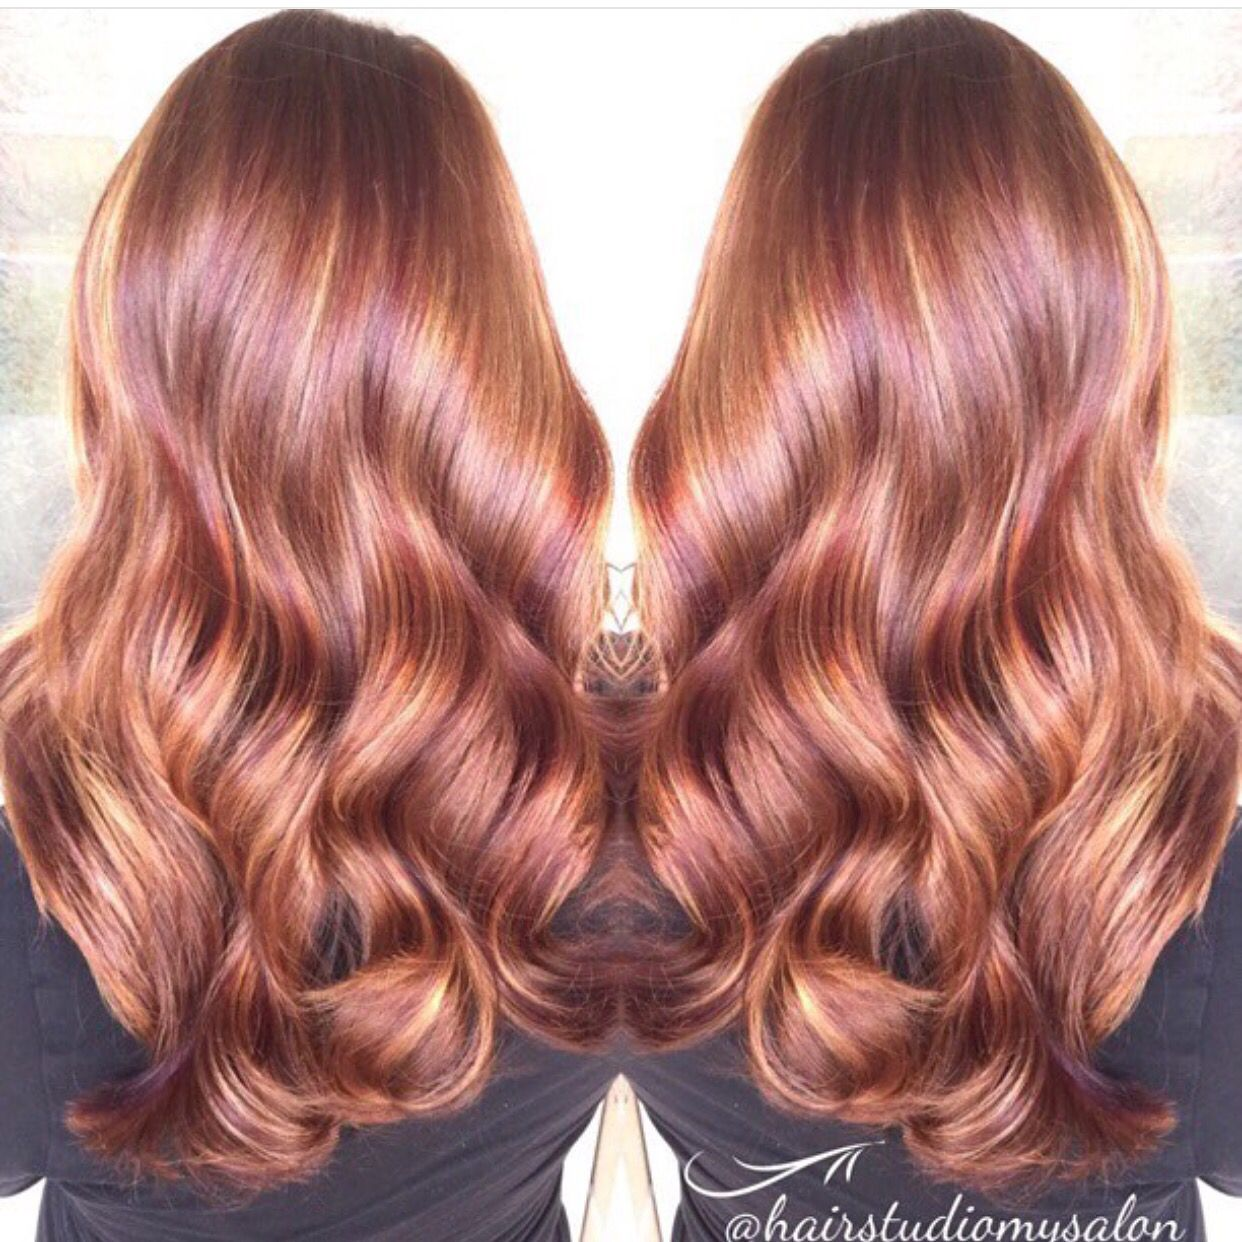 Exquisite Red Hair Copper Hair With Flawless Hollywood Hair Waves